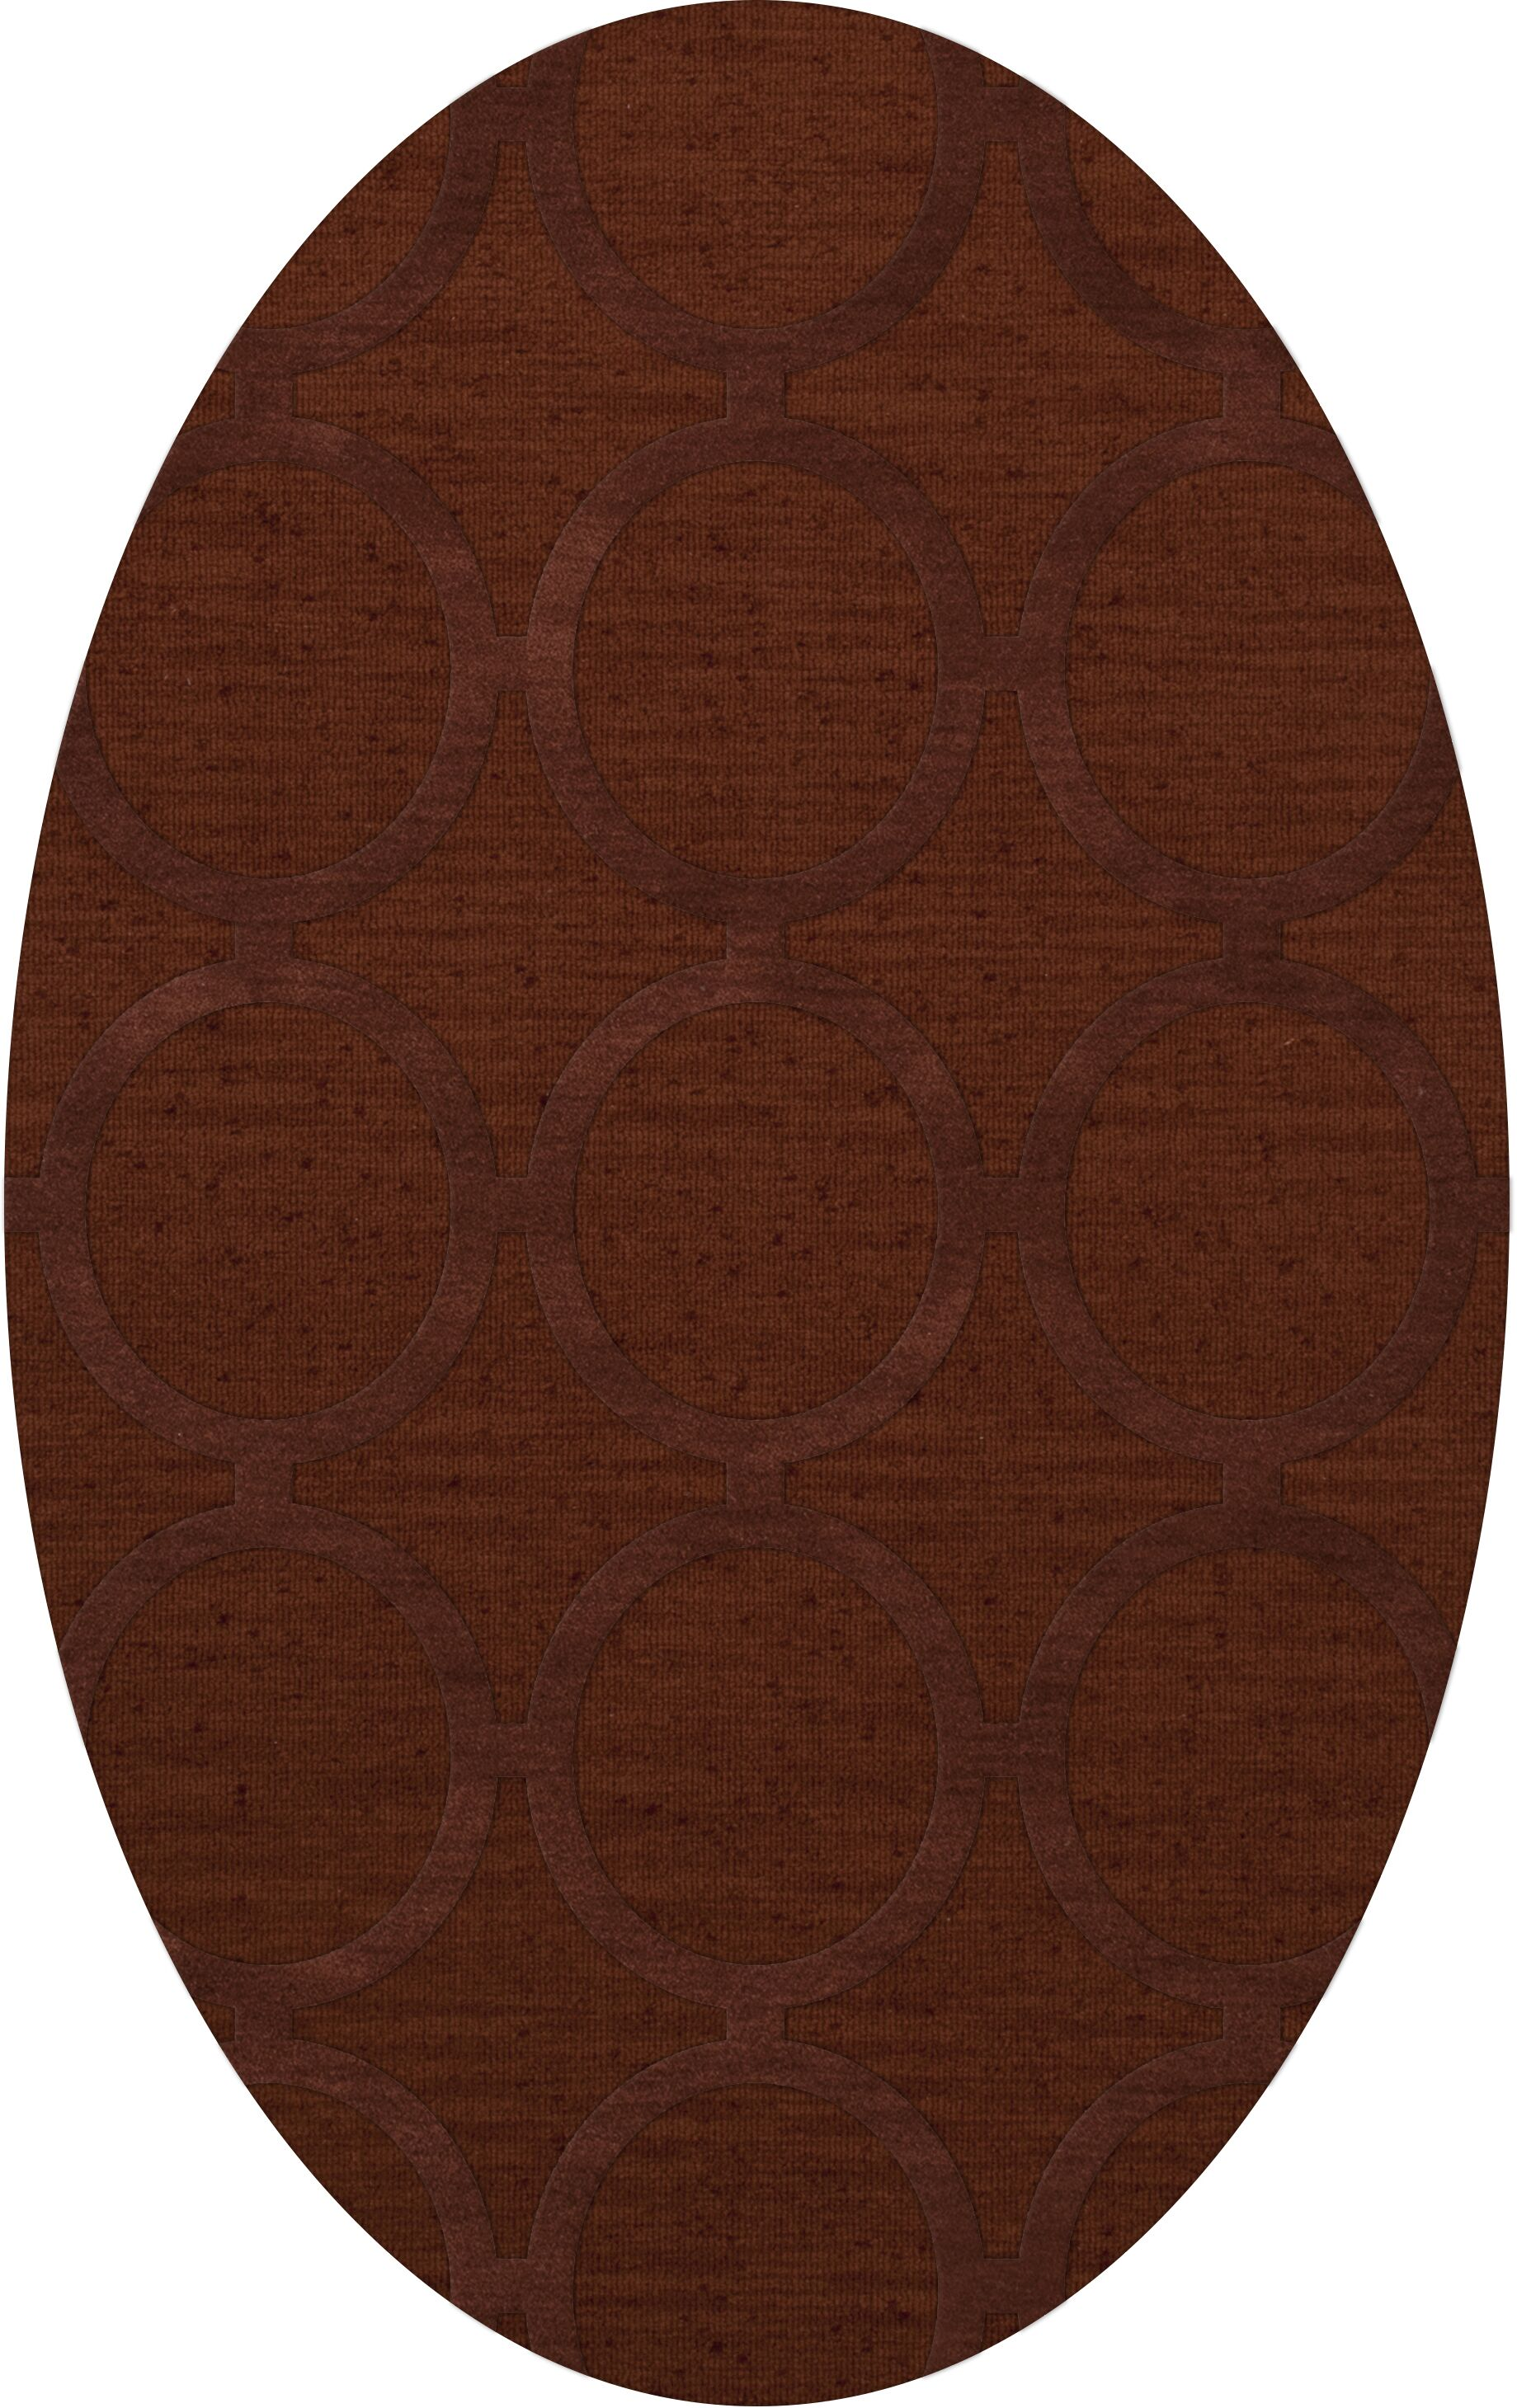 Dover Tufted Wool Paprika Area Rug Rug Size: Oval 5' x 8'